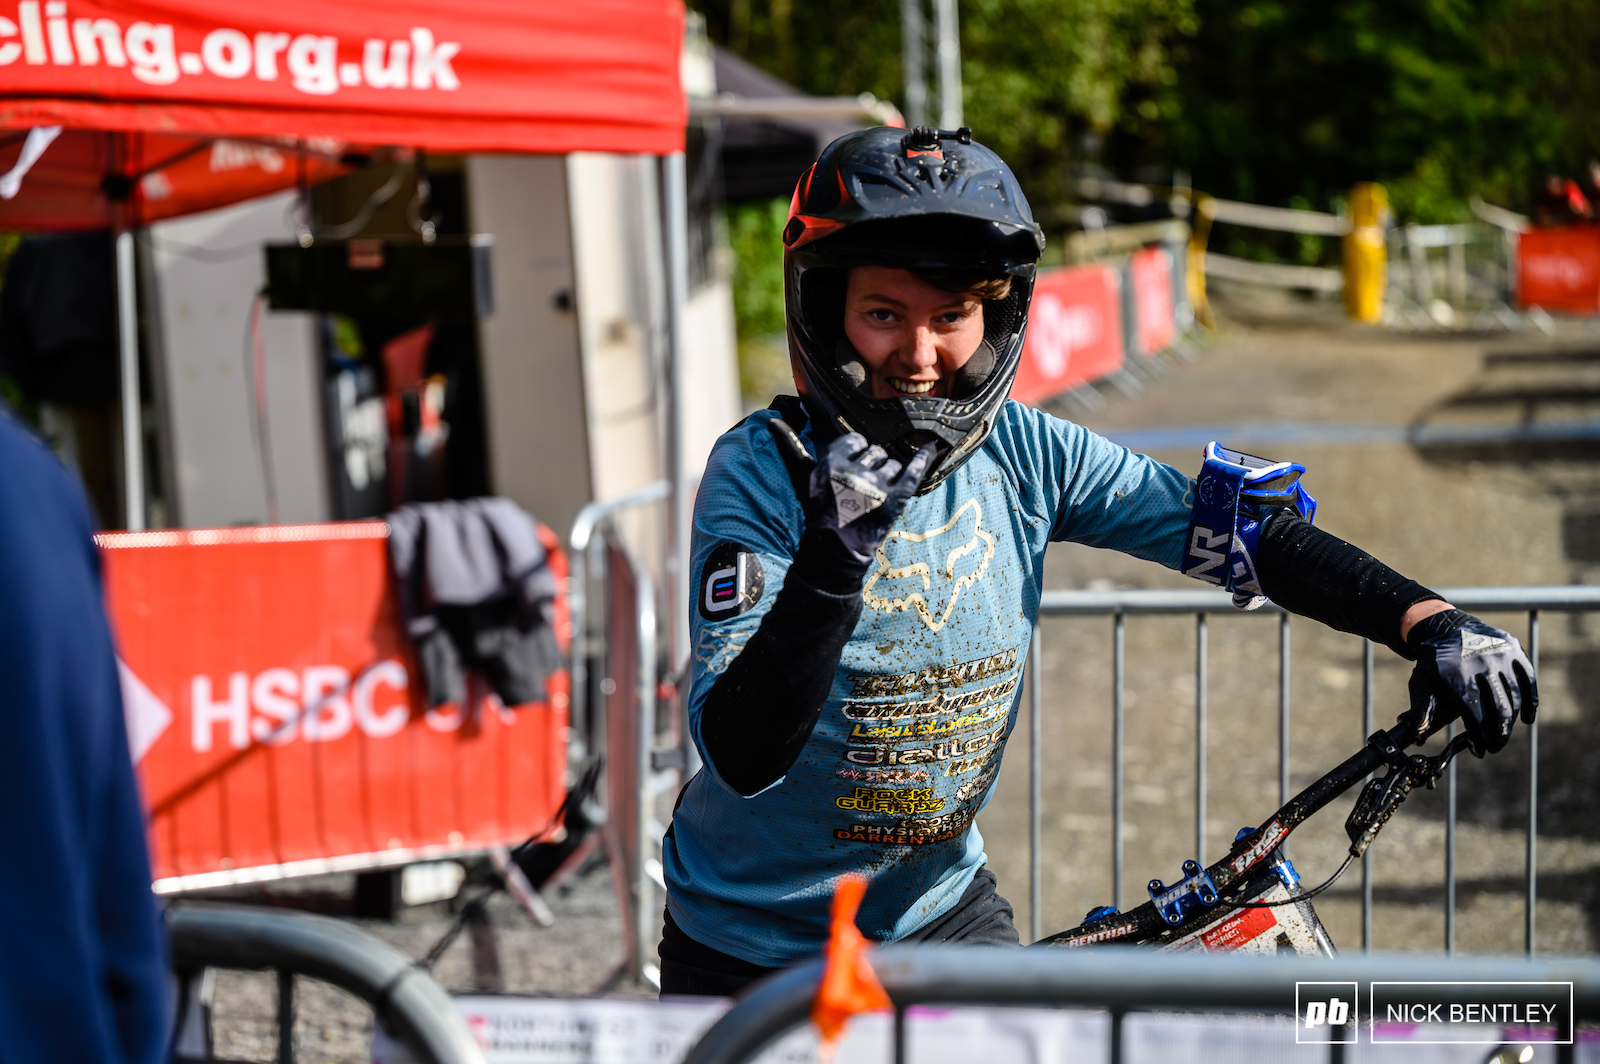 Stacey Fisher was stoked with her race run